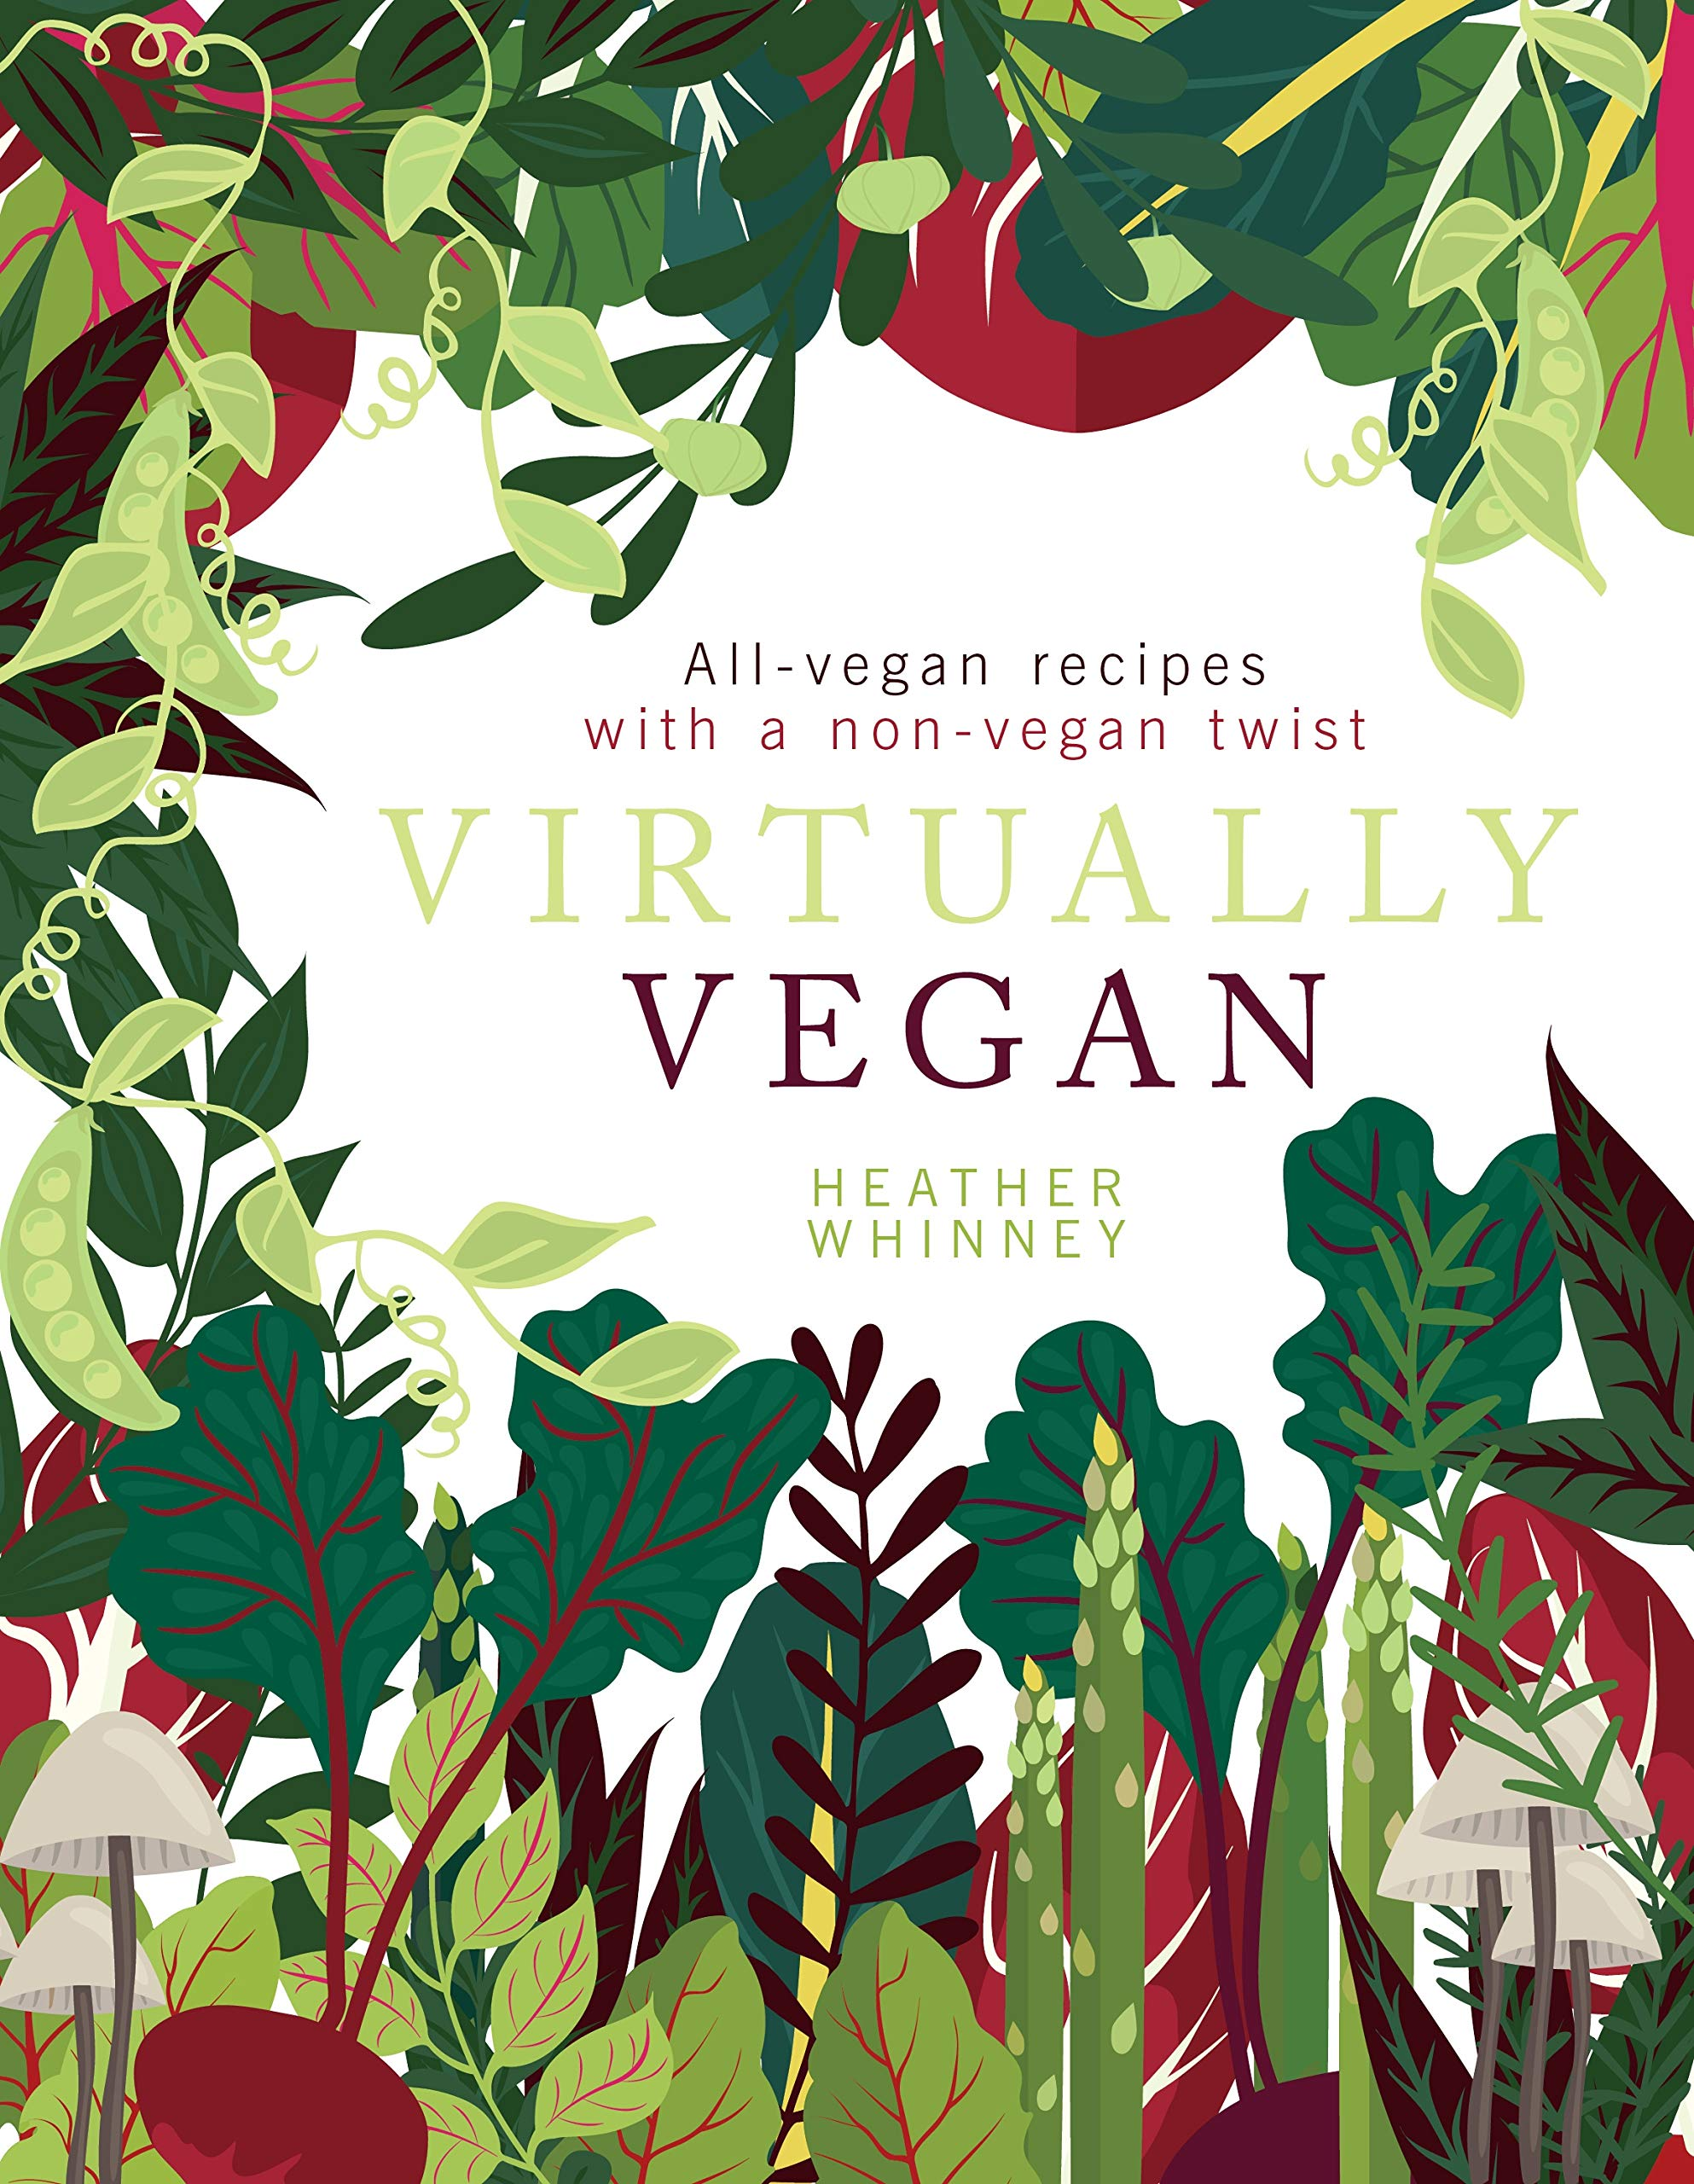 ba8bc3ad4 Virtually Vegan: All-vegan recipes with a non-vegan twist Hardcover –  Illustrated, 21 Jun 2018